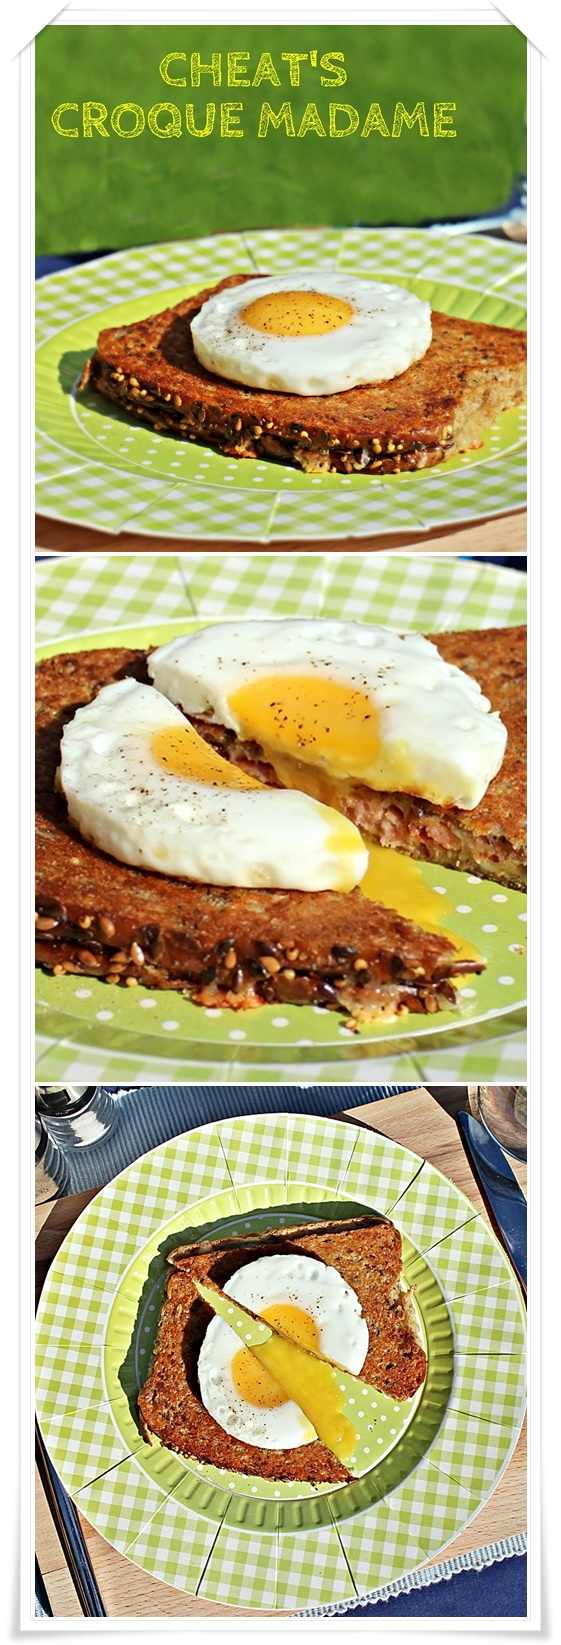 Cheat's Croque Madame, a quick and tasty toasted sandwich! Fab Food 4 All